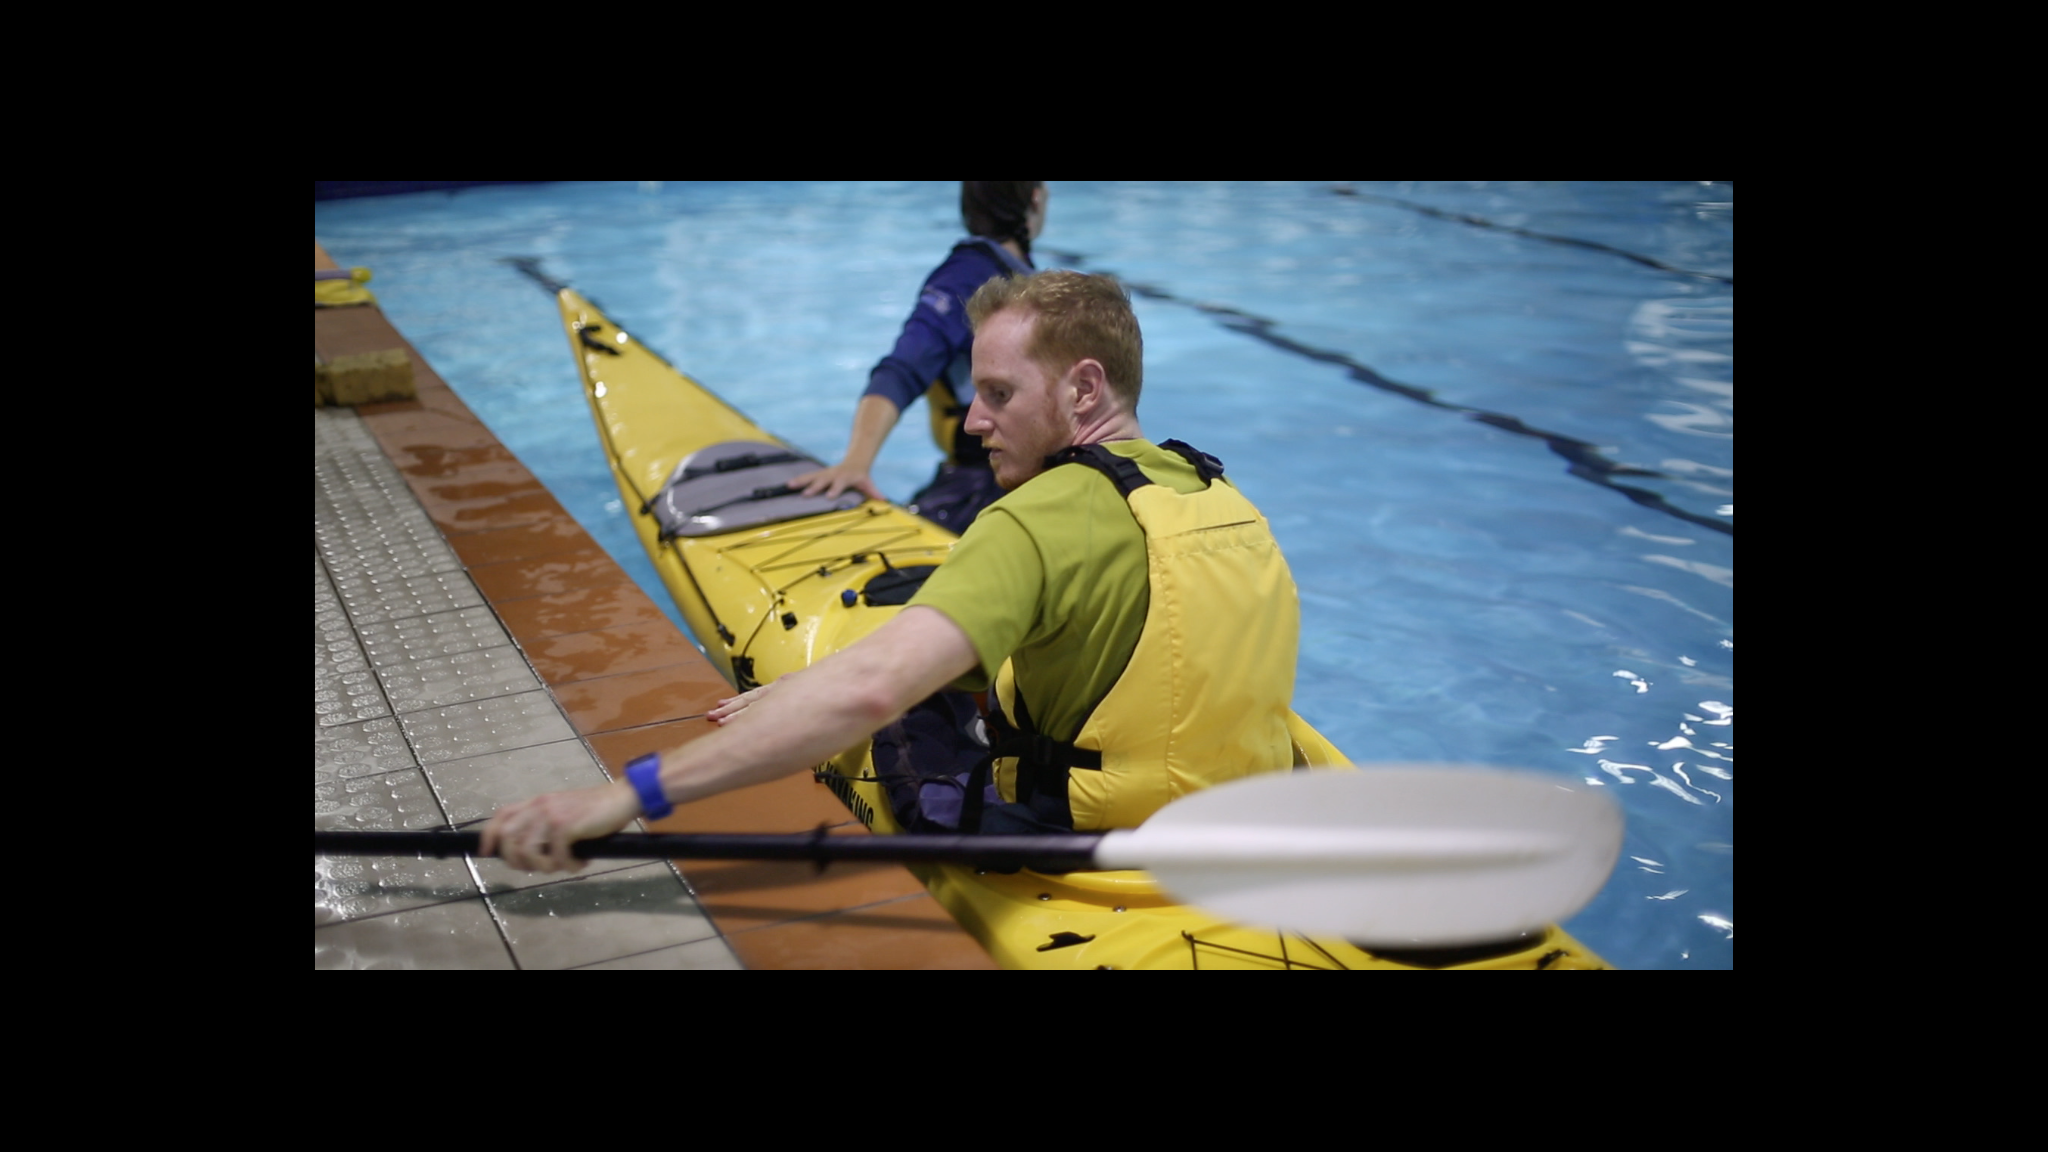 Roaring 40s Kayaking - Beginner Learn to Kayak Lessons Hobart Tasmania